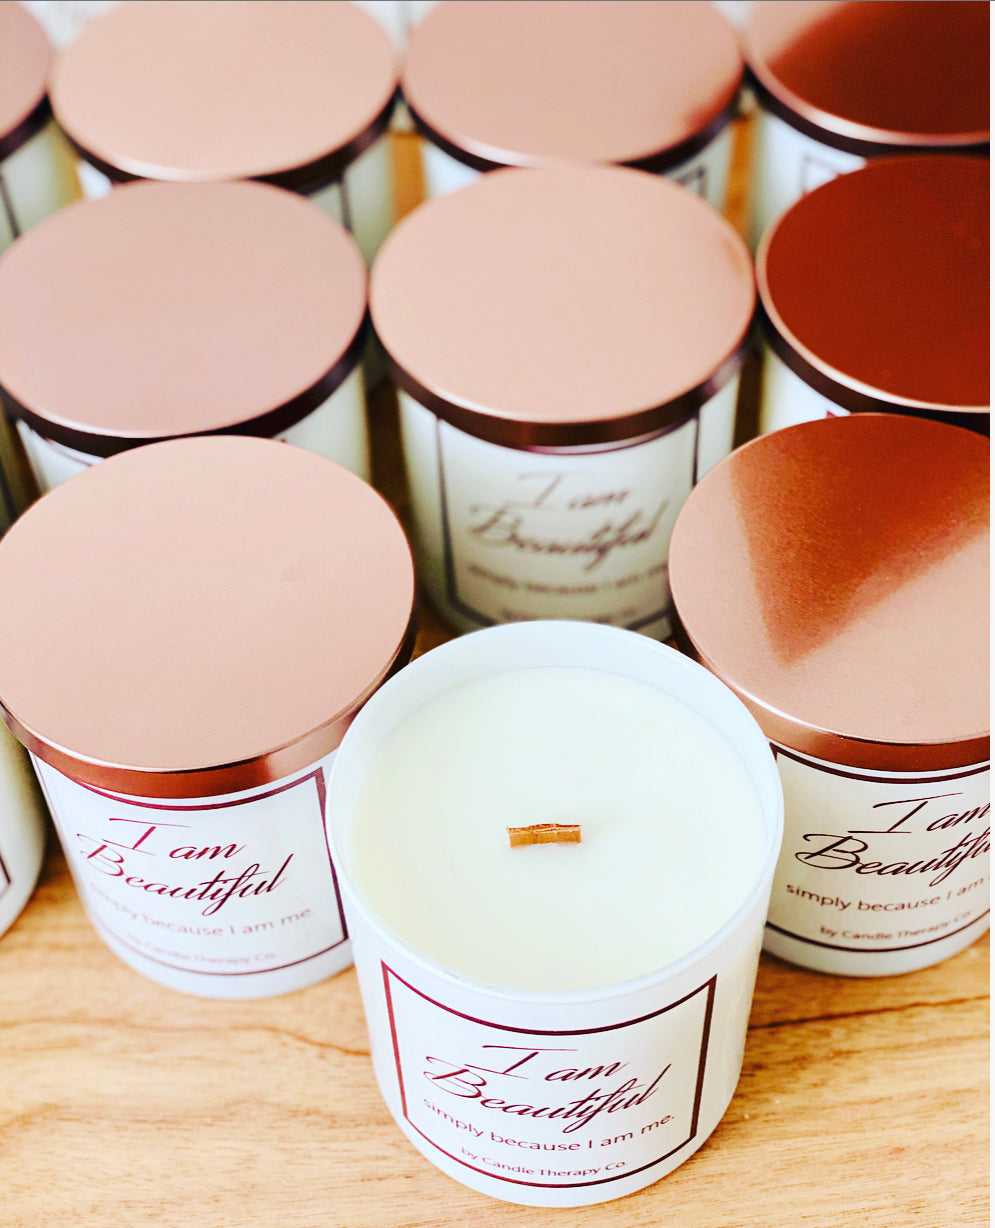 Daily Affirmation Candle -  I am Beautiful